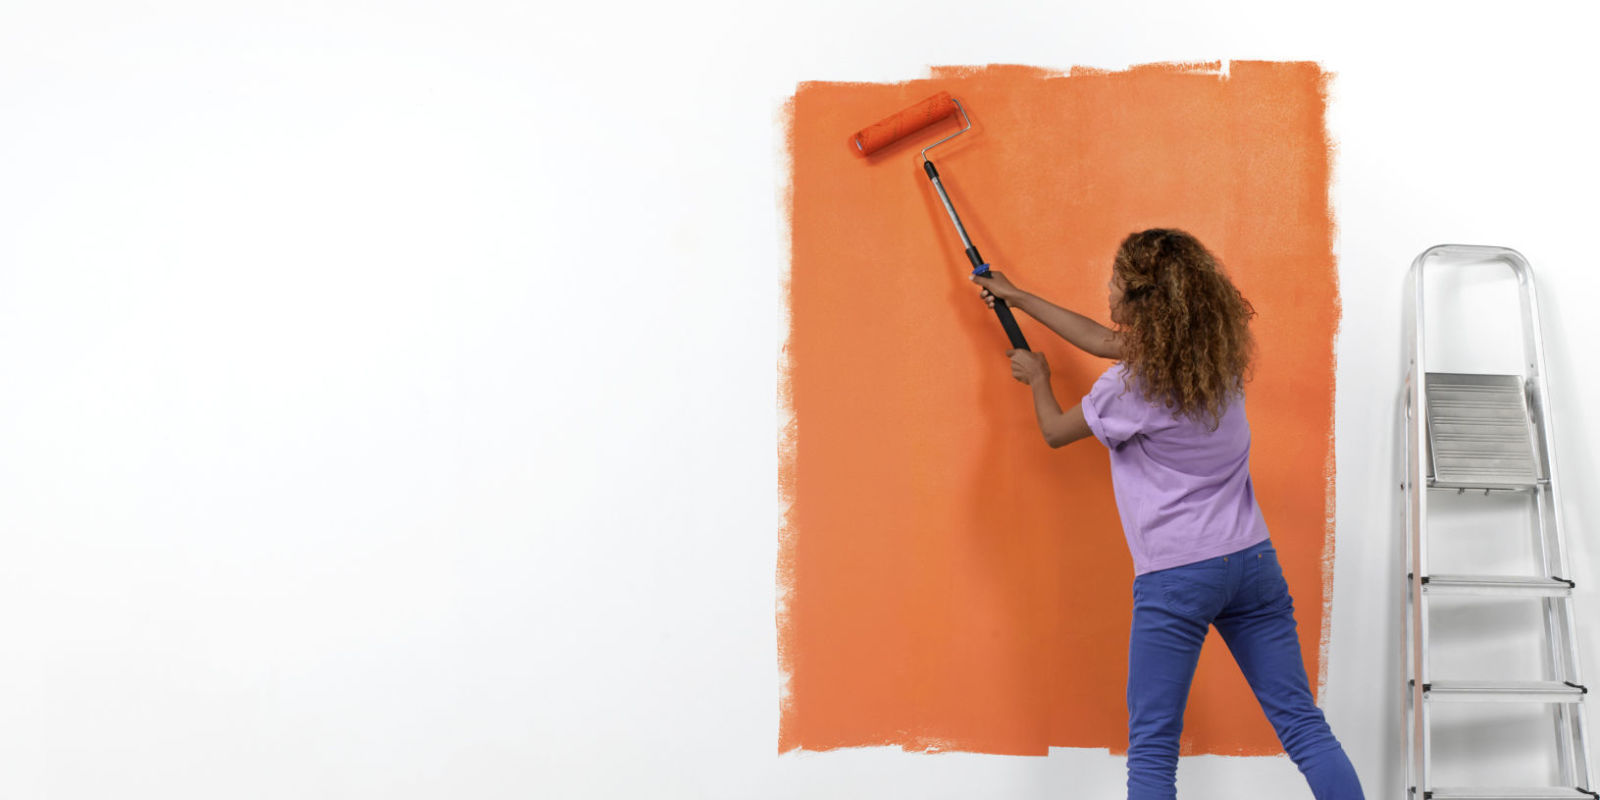 how to paint a wall using a with roller technique with a woman demonstrating with orange paint